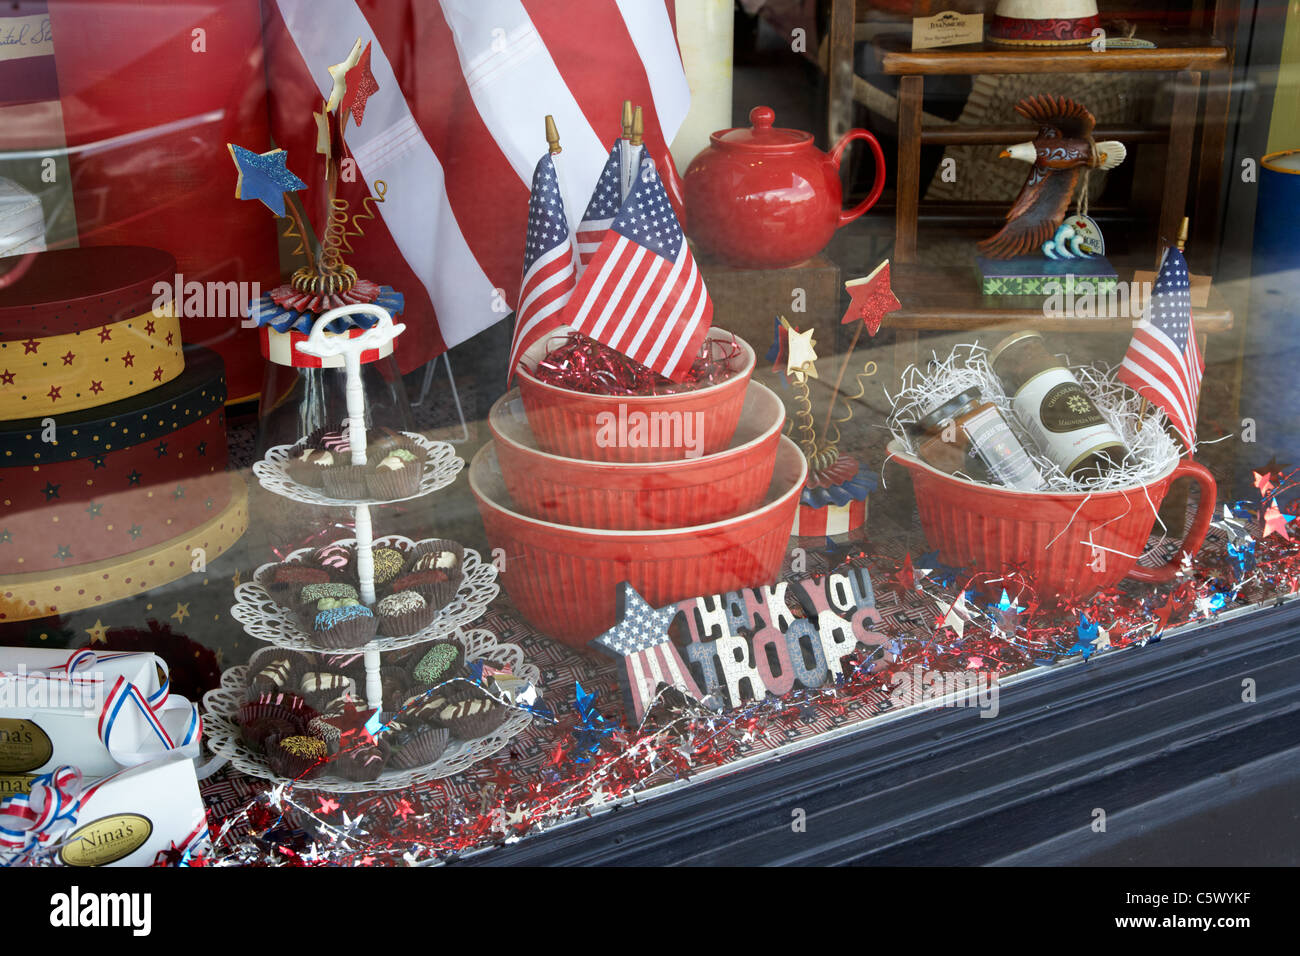 patriotic display thanking us troops in a shop window in lynchburg tennessee usa - Stock Image